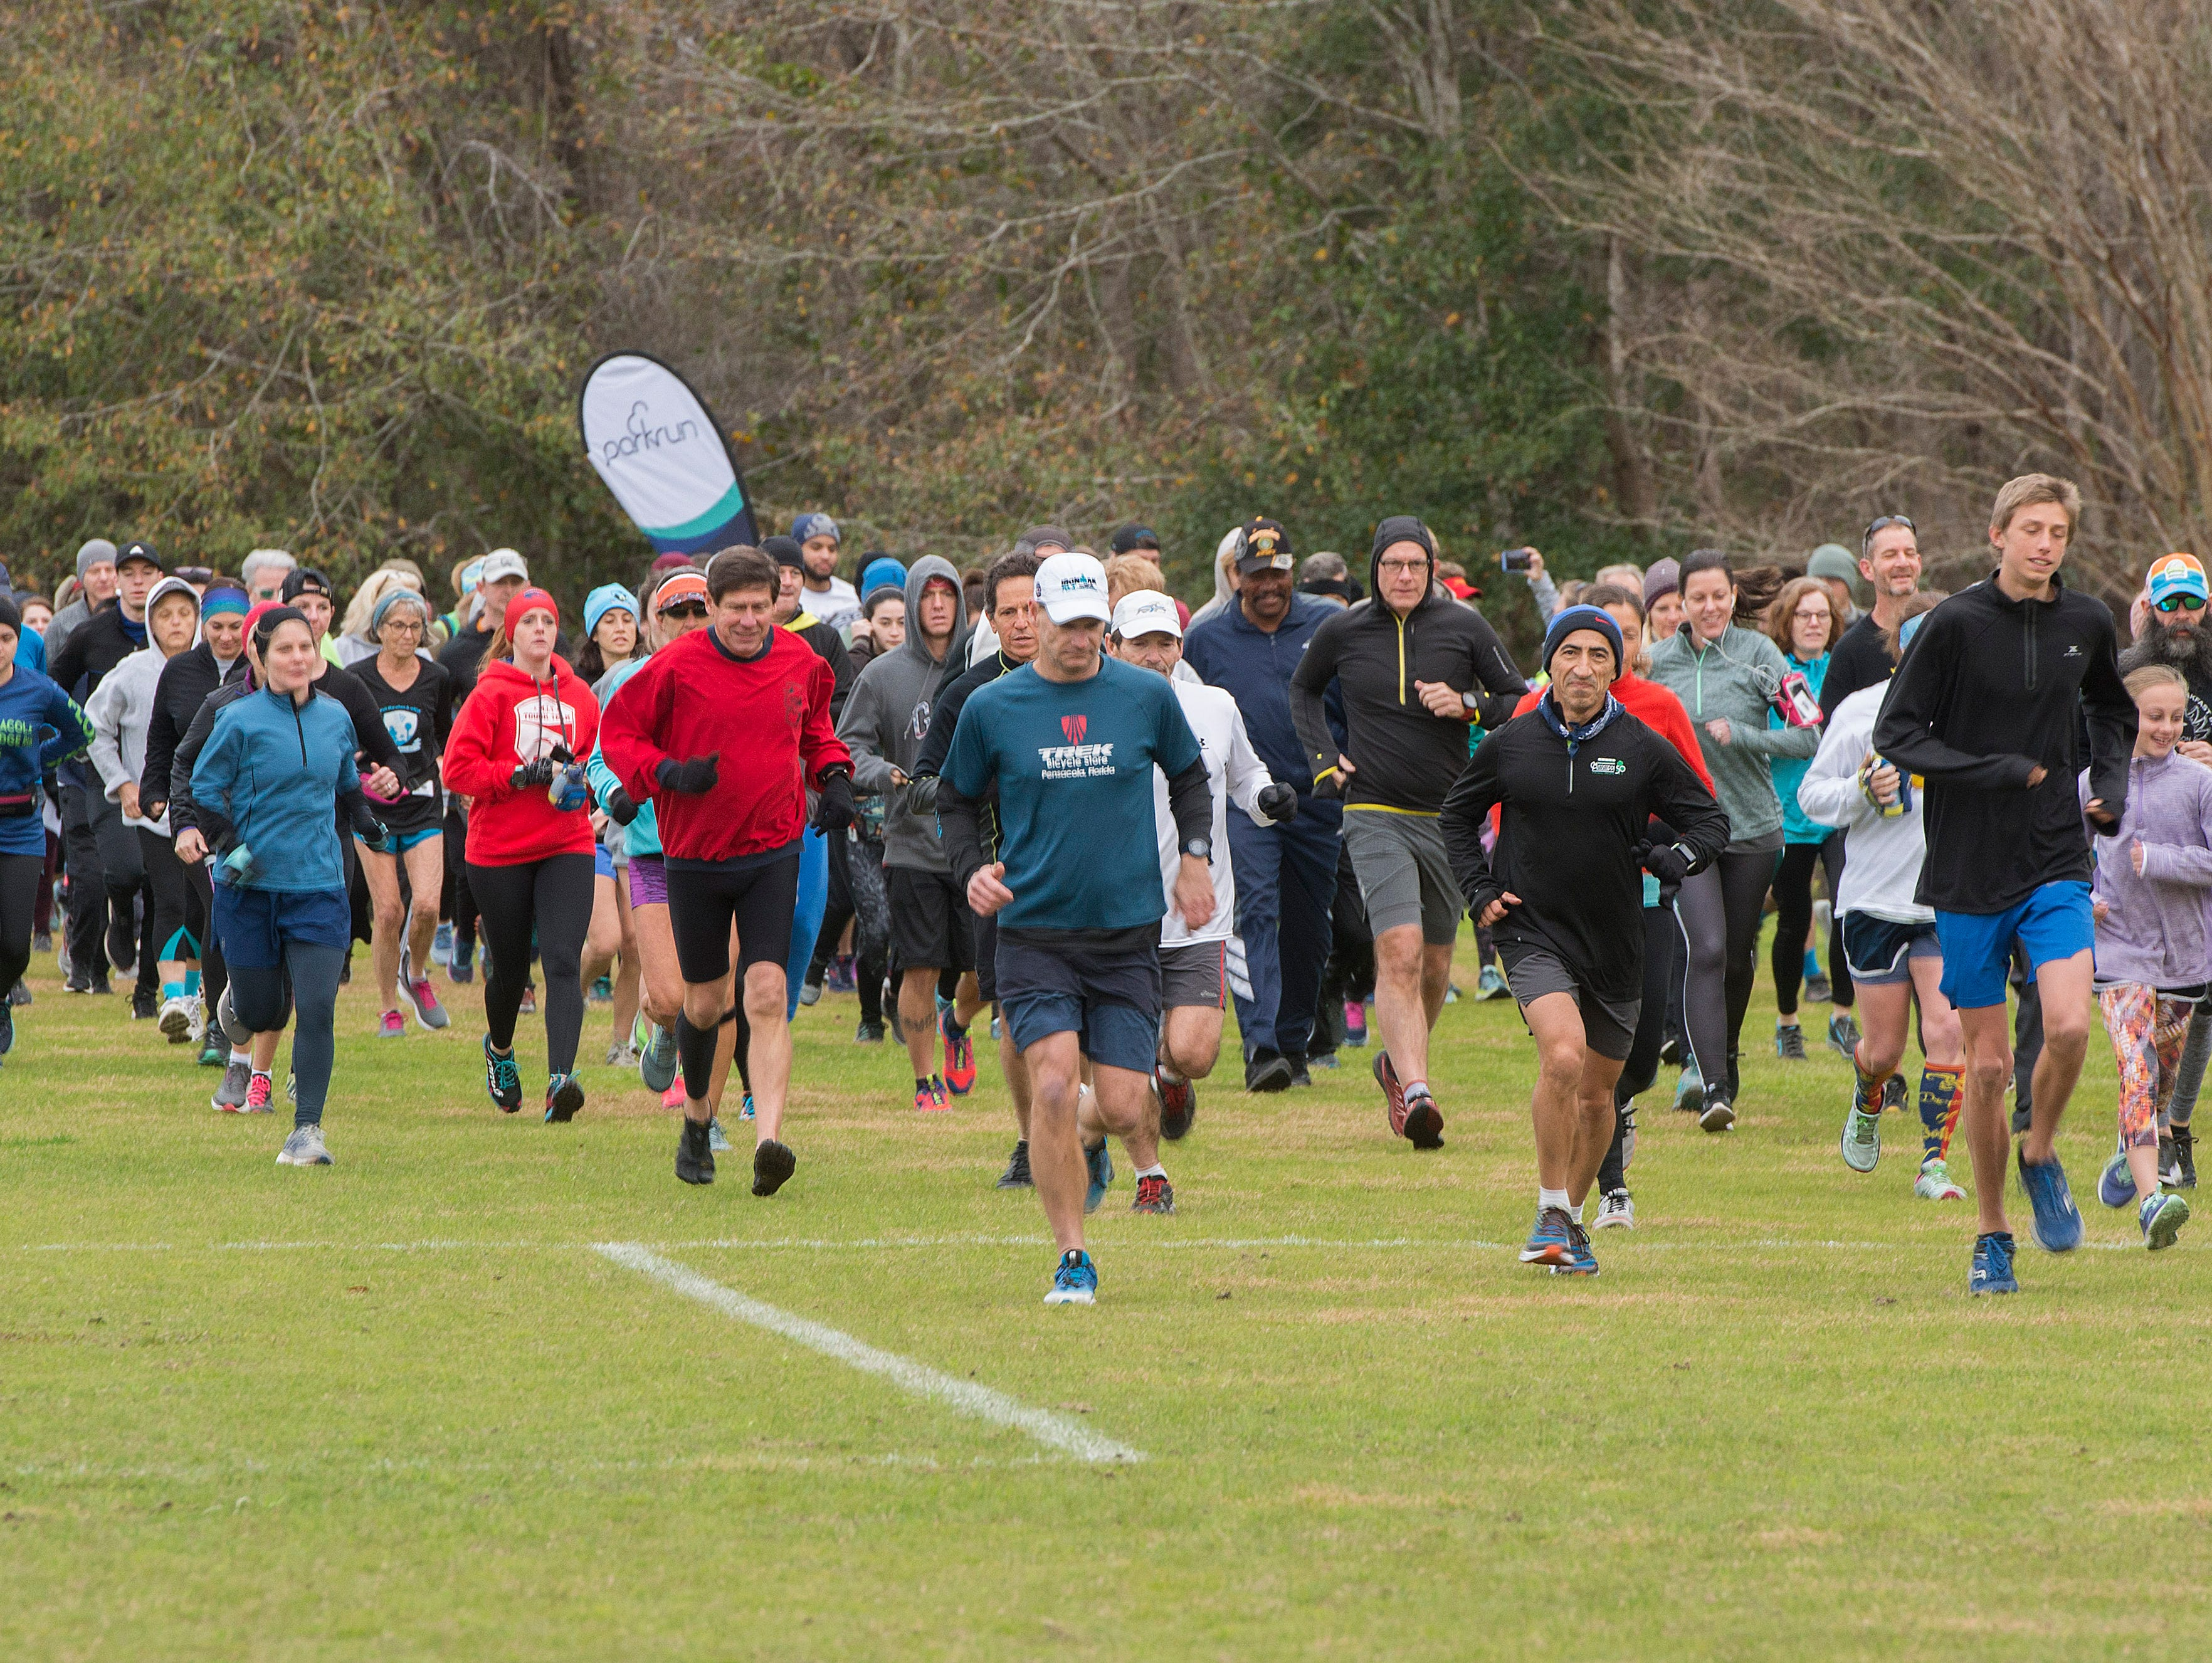 Runners make their way along the course Saturday, February 9, 2019 during the Parkrun 5k at the University of West Florida.